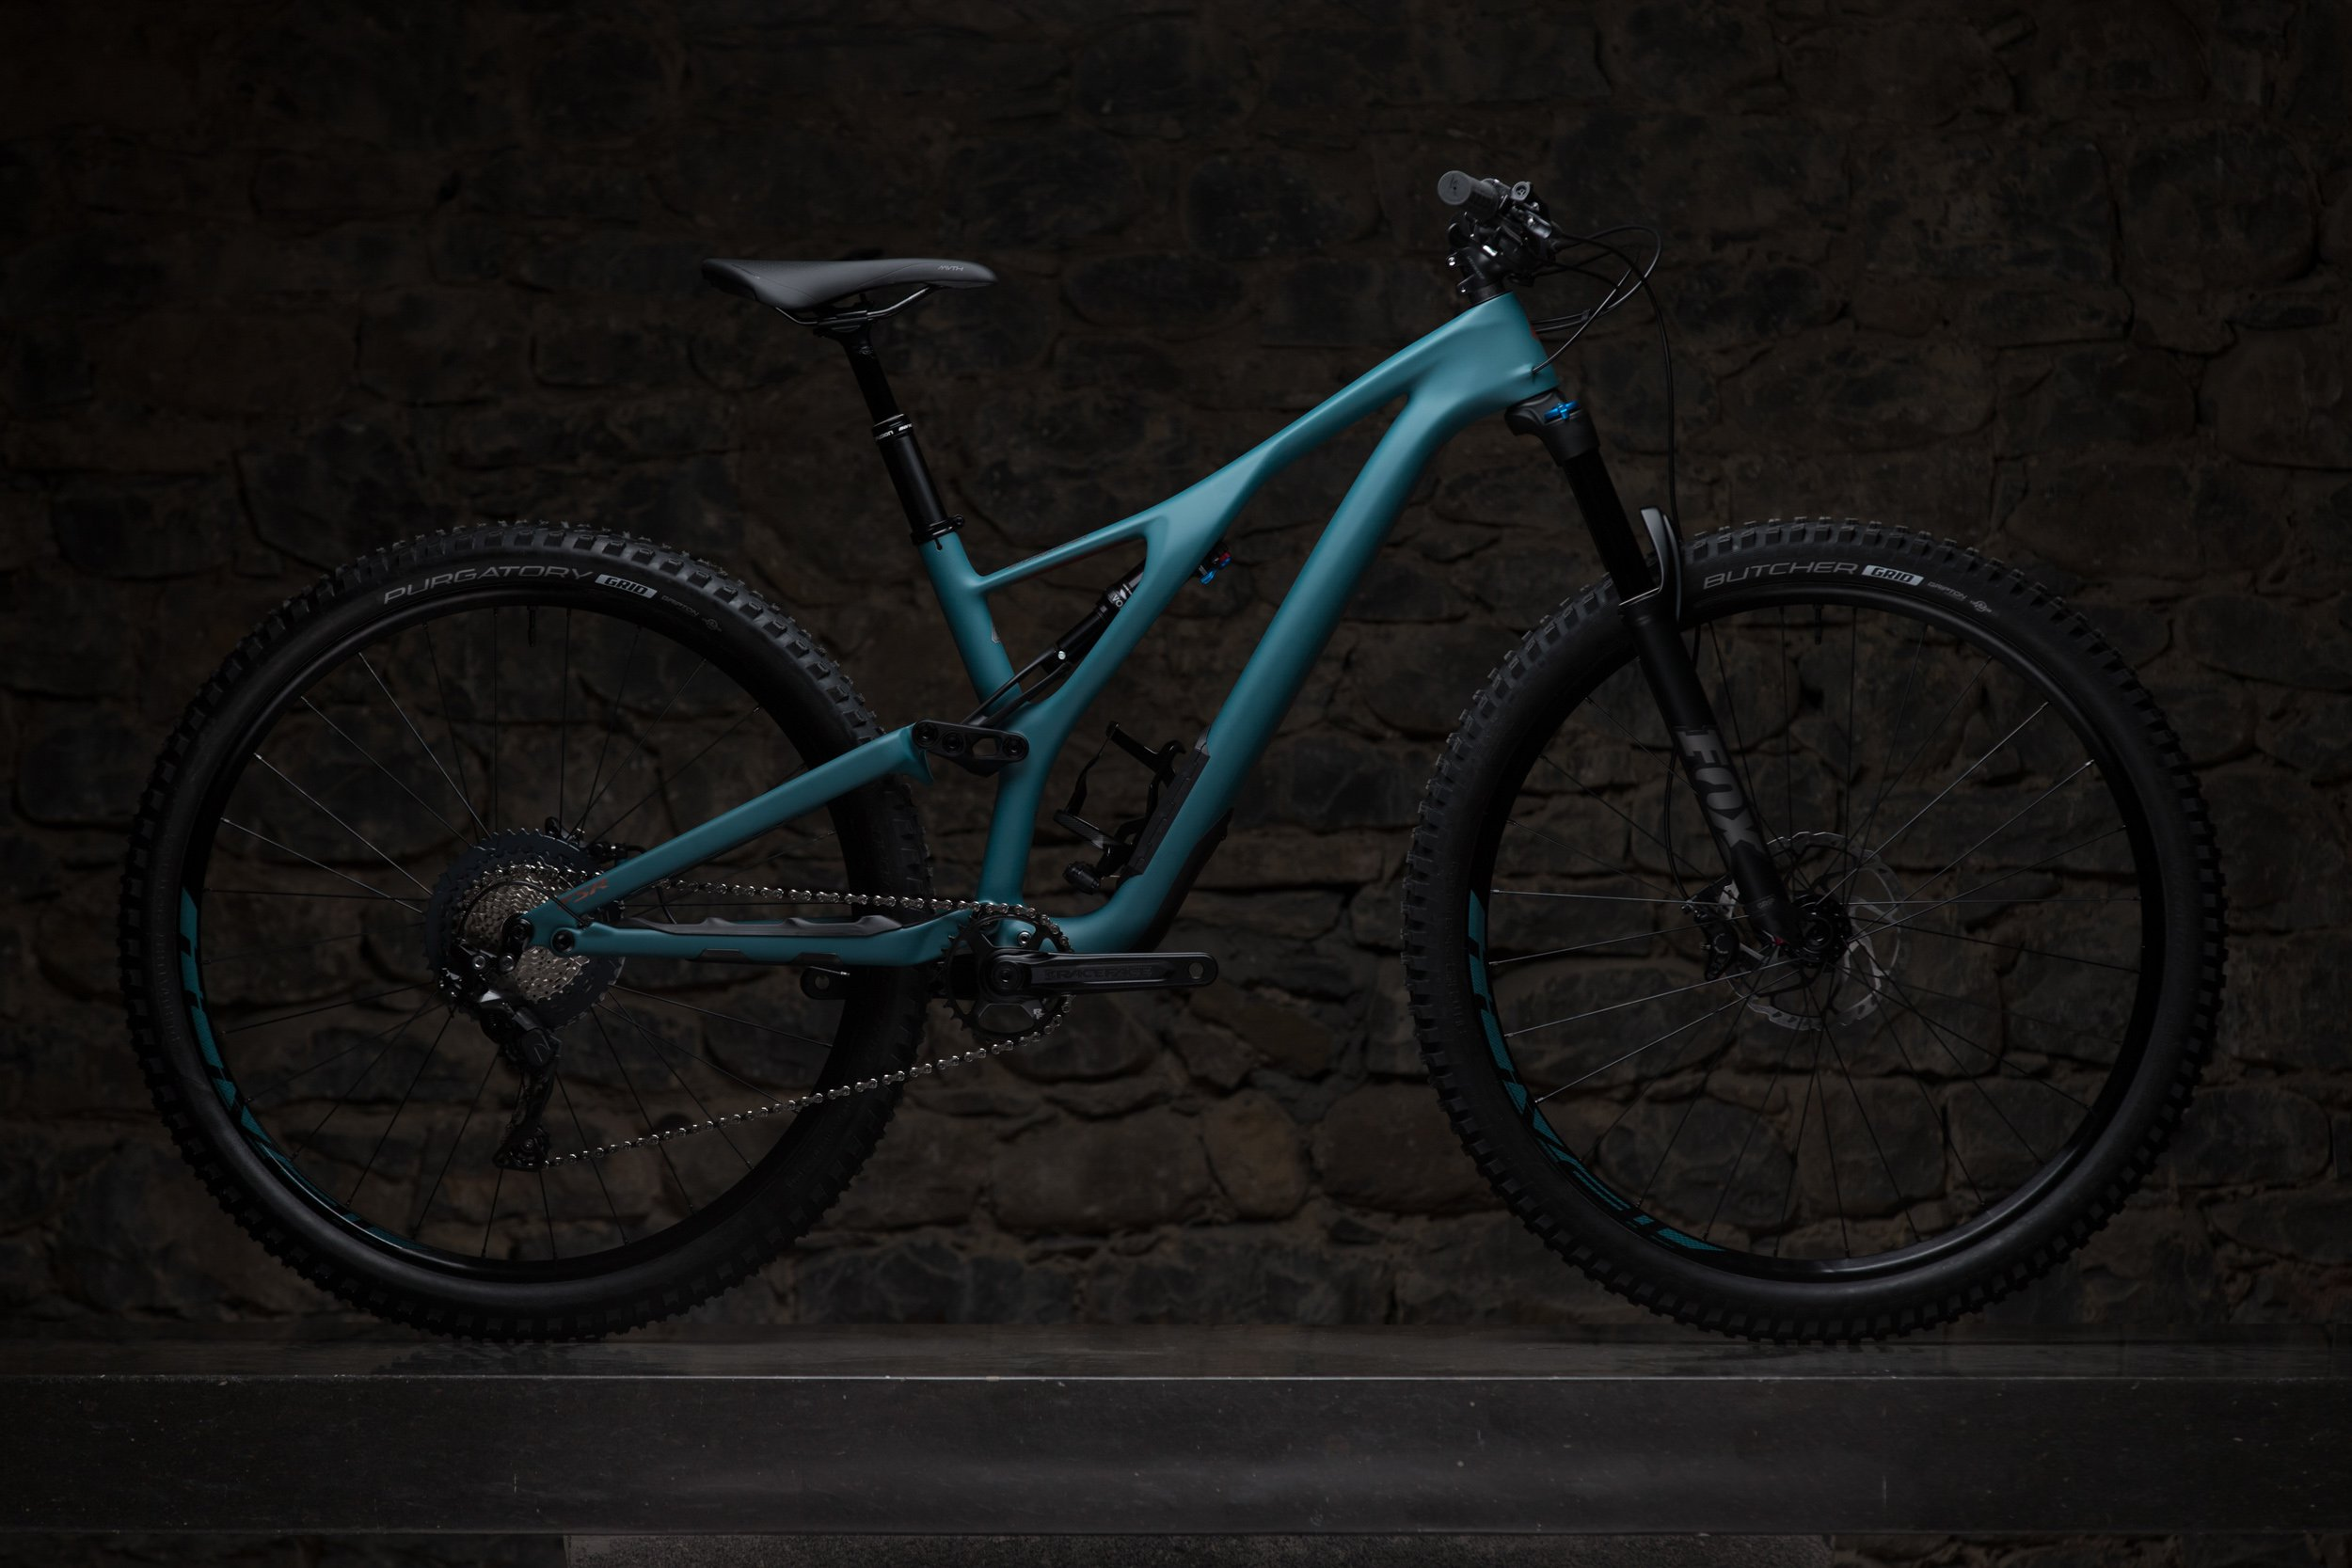 Women's Specialized Stumpjumper ST Comp Carbon 29